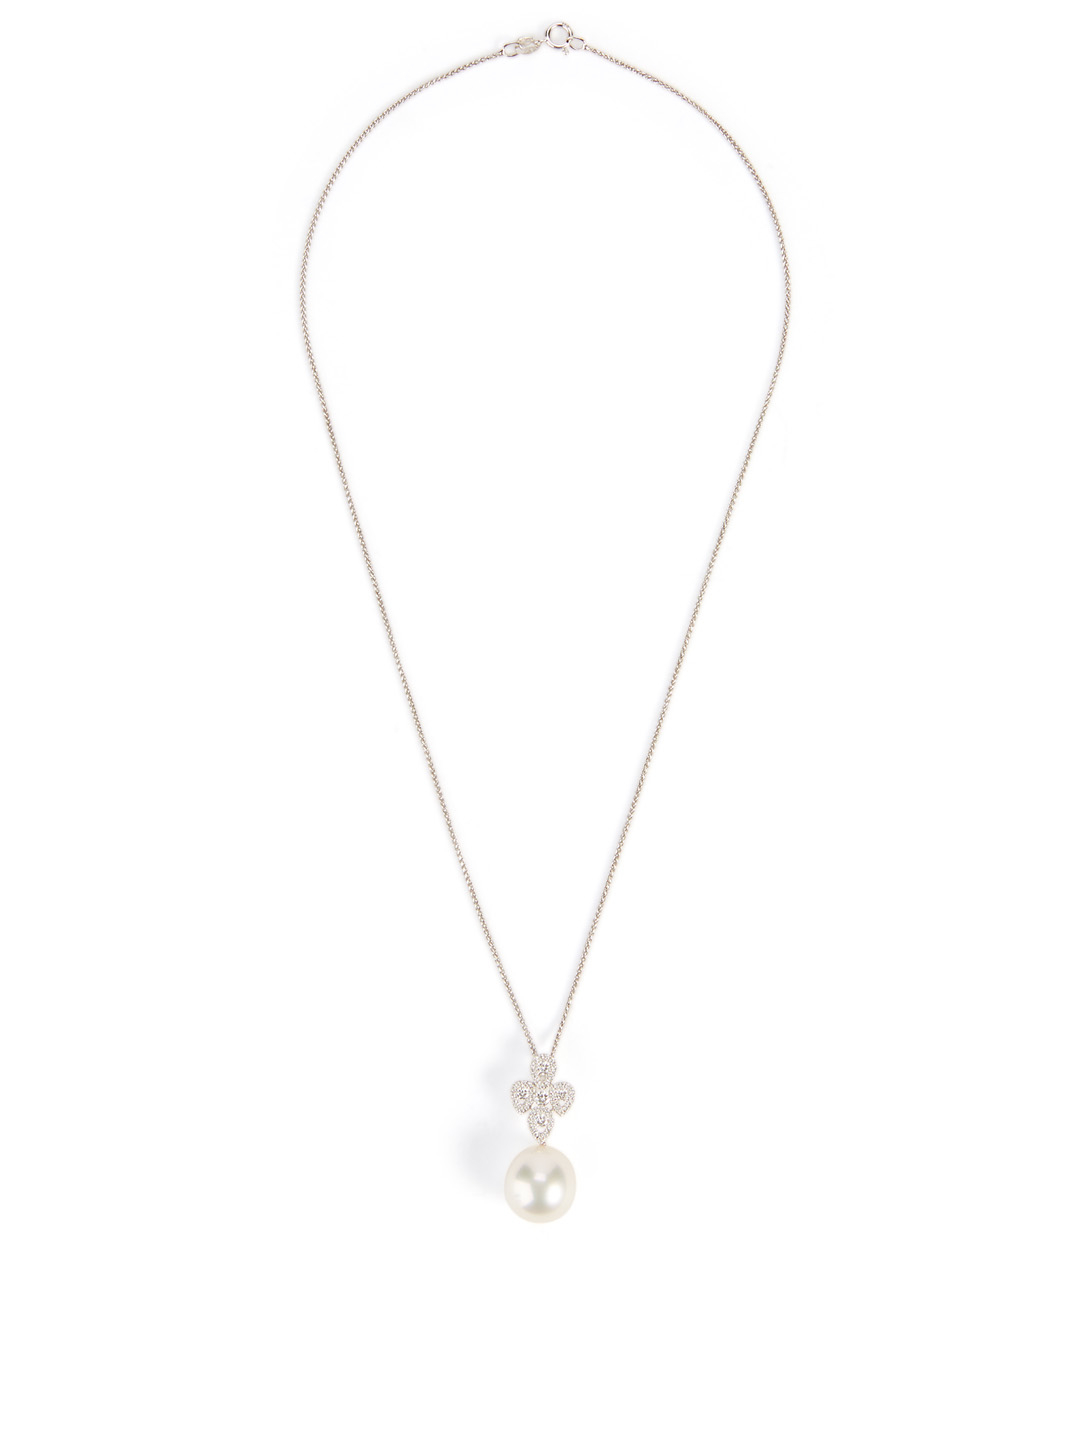 YOKO LONDON 18K White Gold Australian South Sea Pearl And Diamond Pendant Necklace Women's Metallic